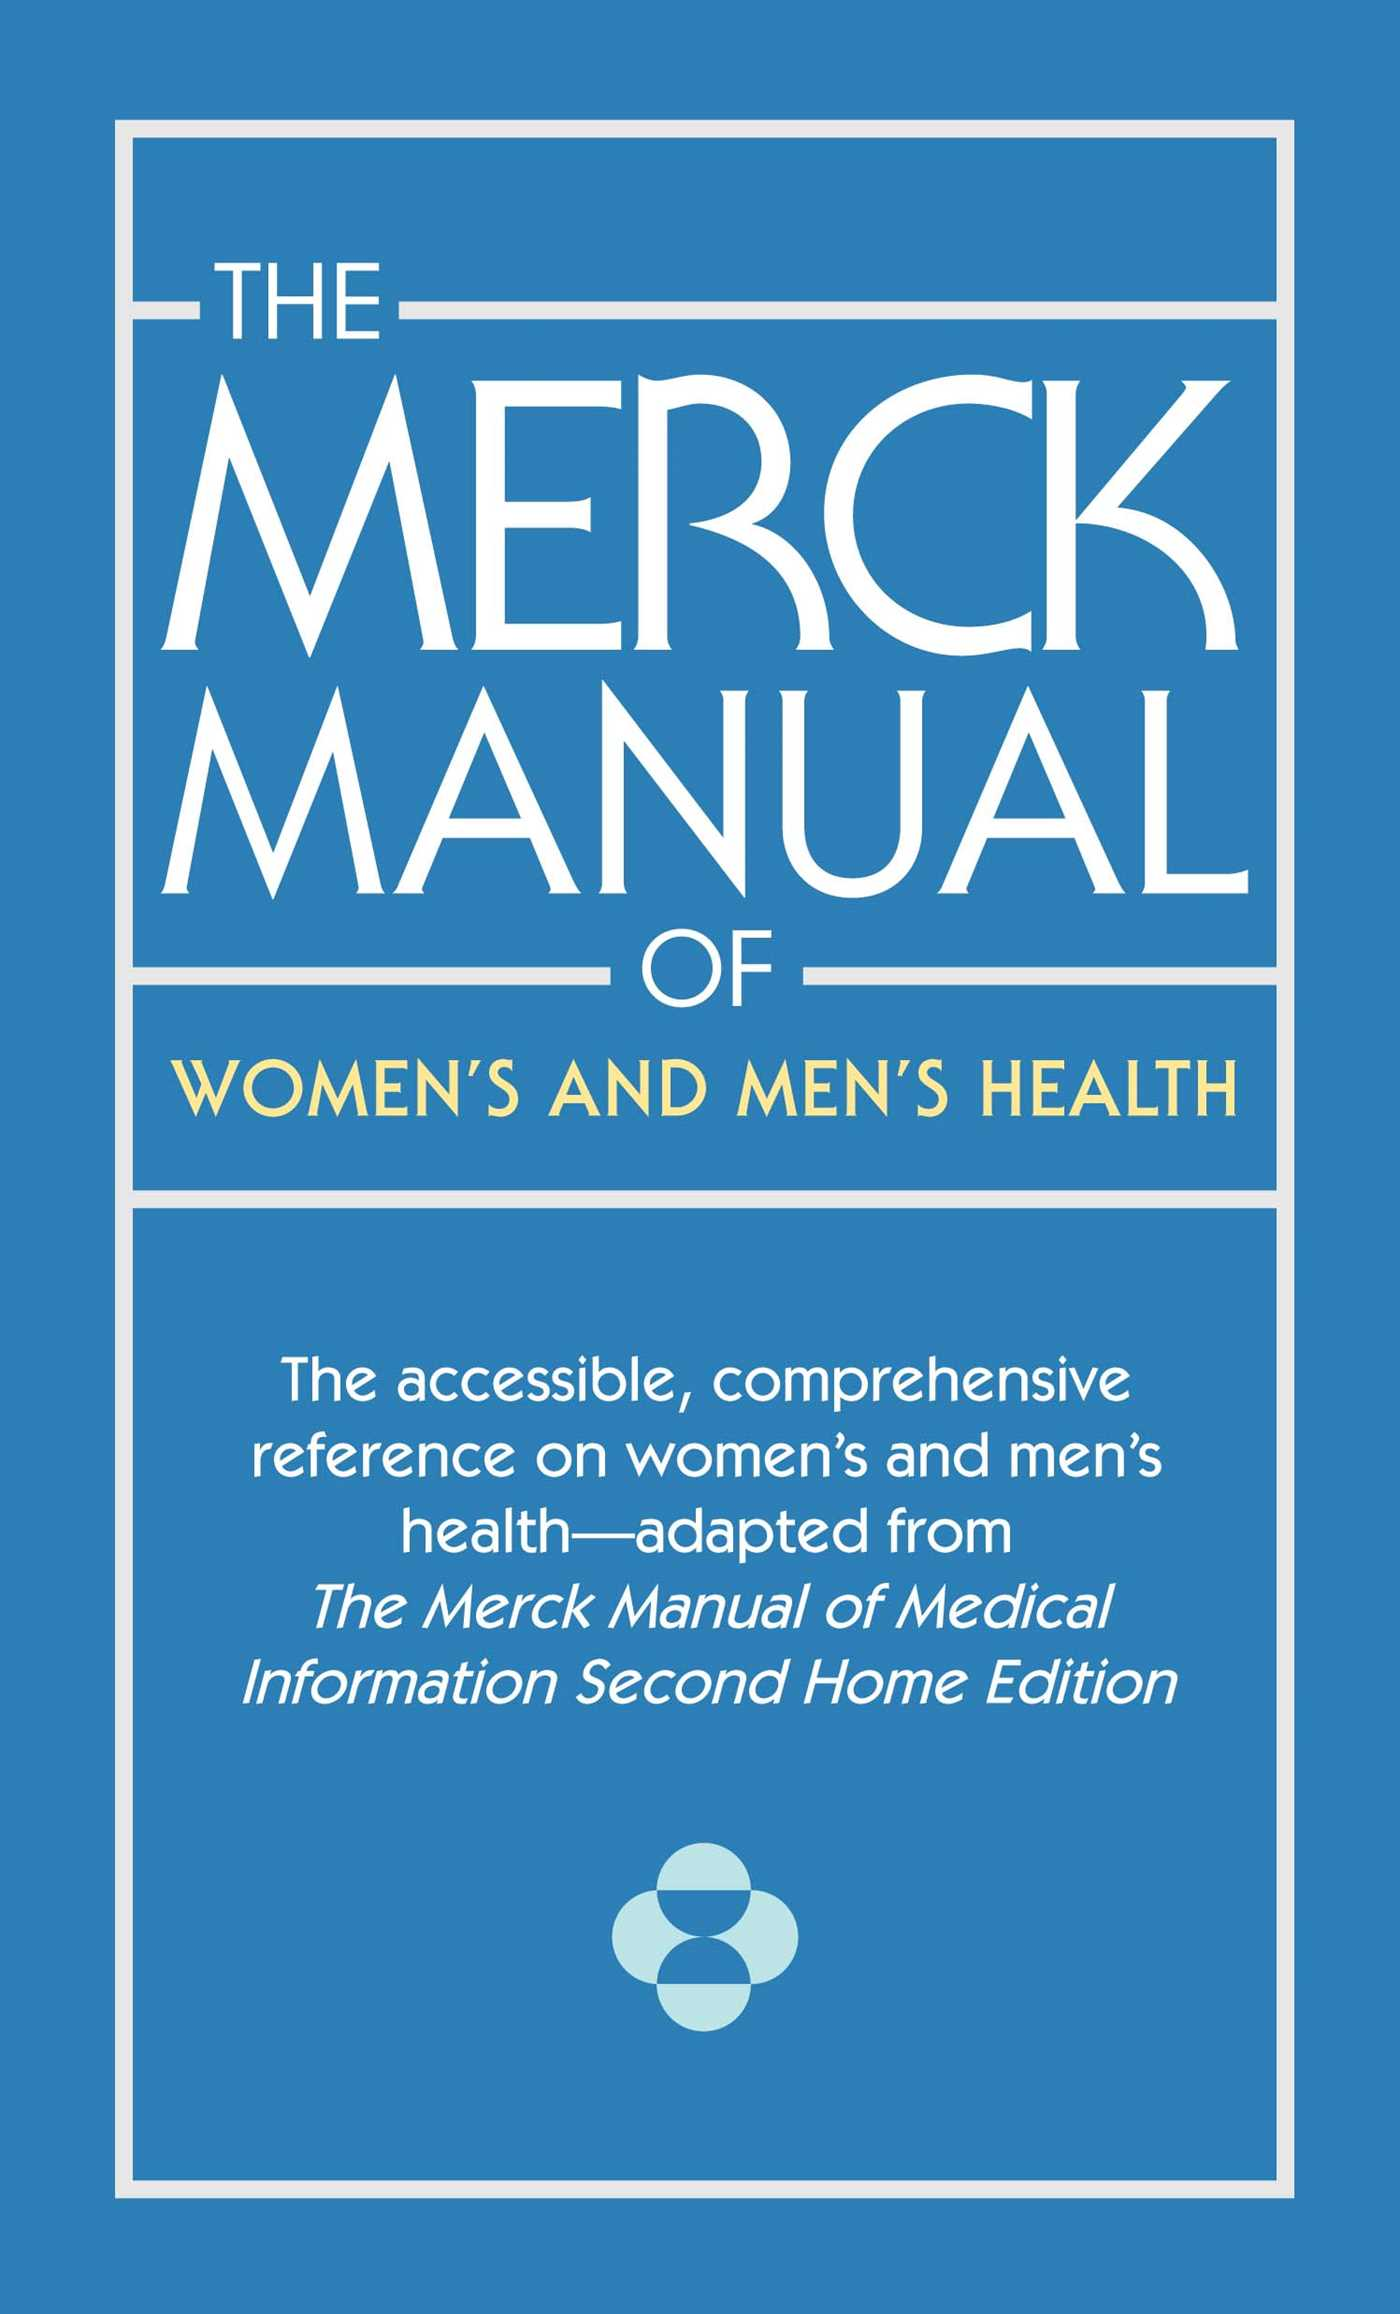 Merck-manual-of-womens-and-mens-health-9781501104534_hr